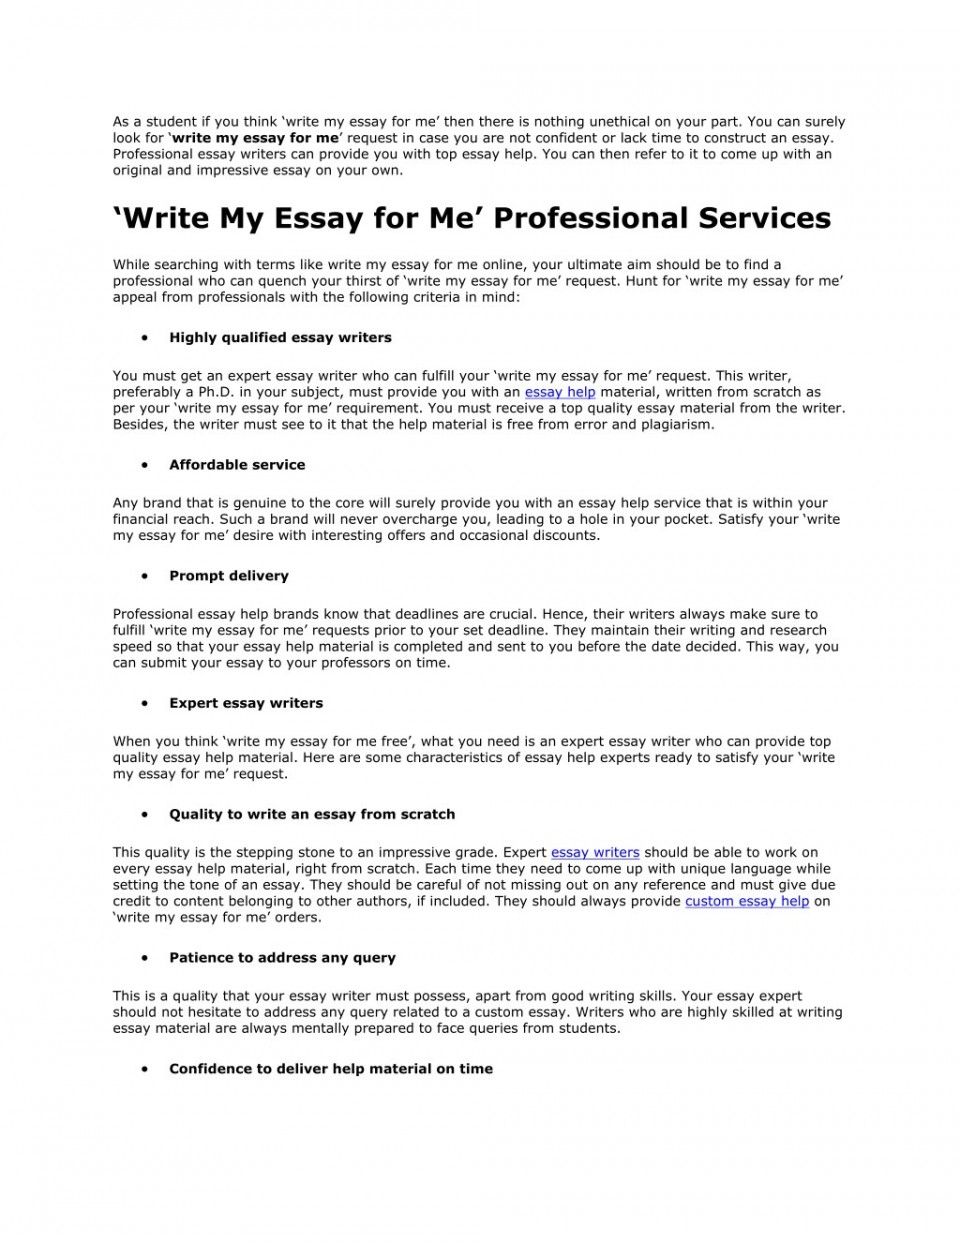 017 Write My Essay For Me Example As Student If You Think Surprising College Application Free Online Uk 960